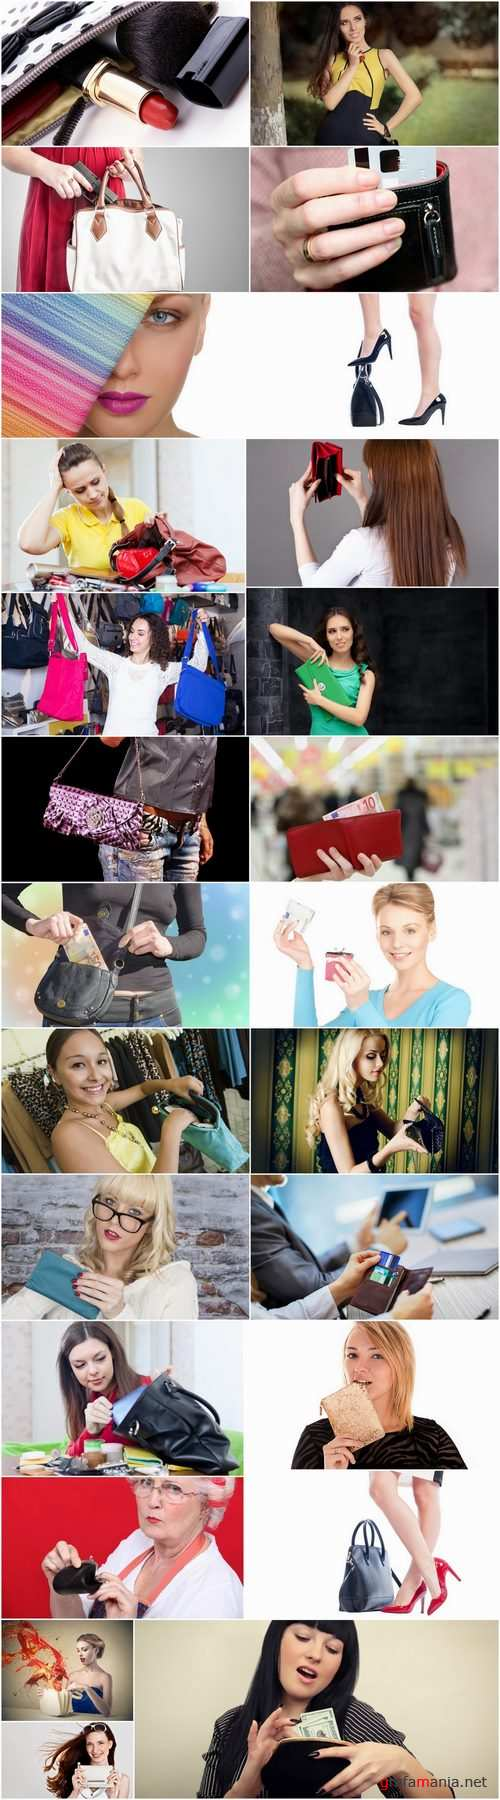 Purse bag luggage girl woman shopping 25 HQ Jpeg